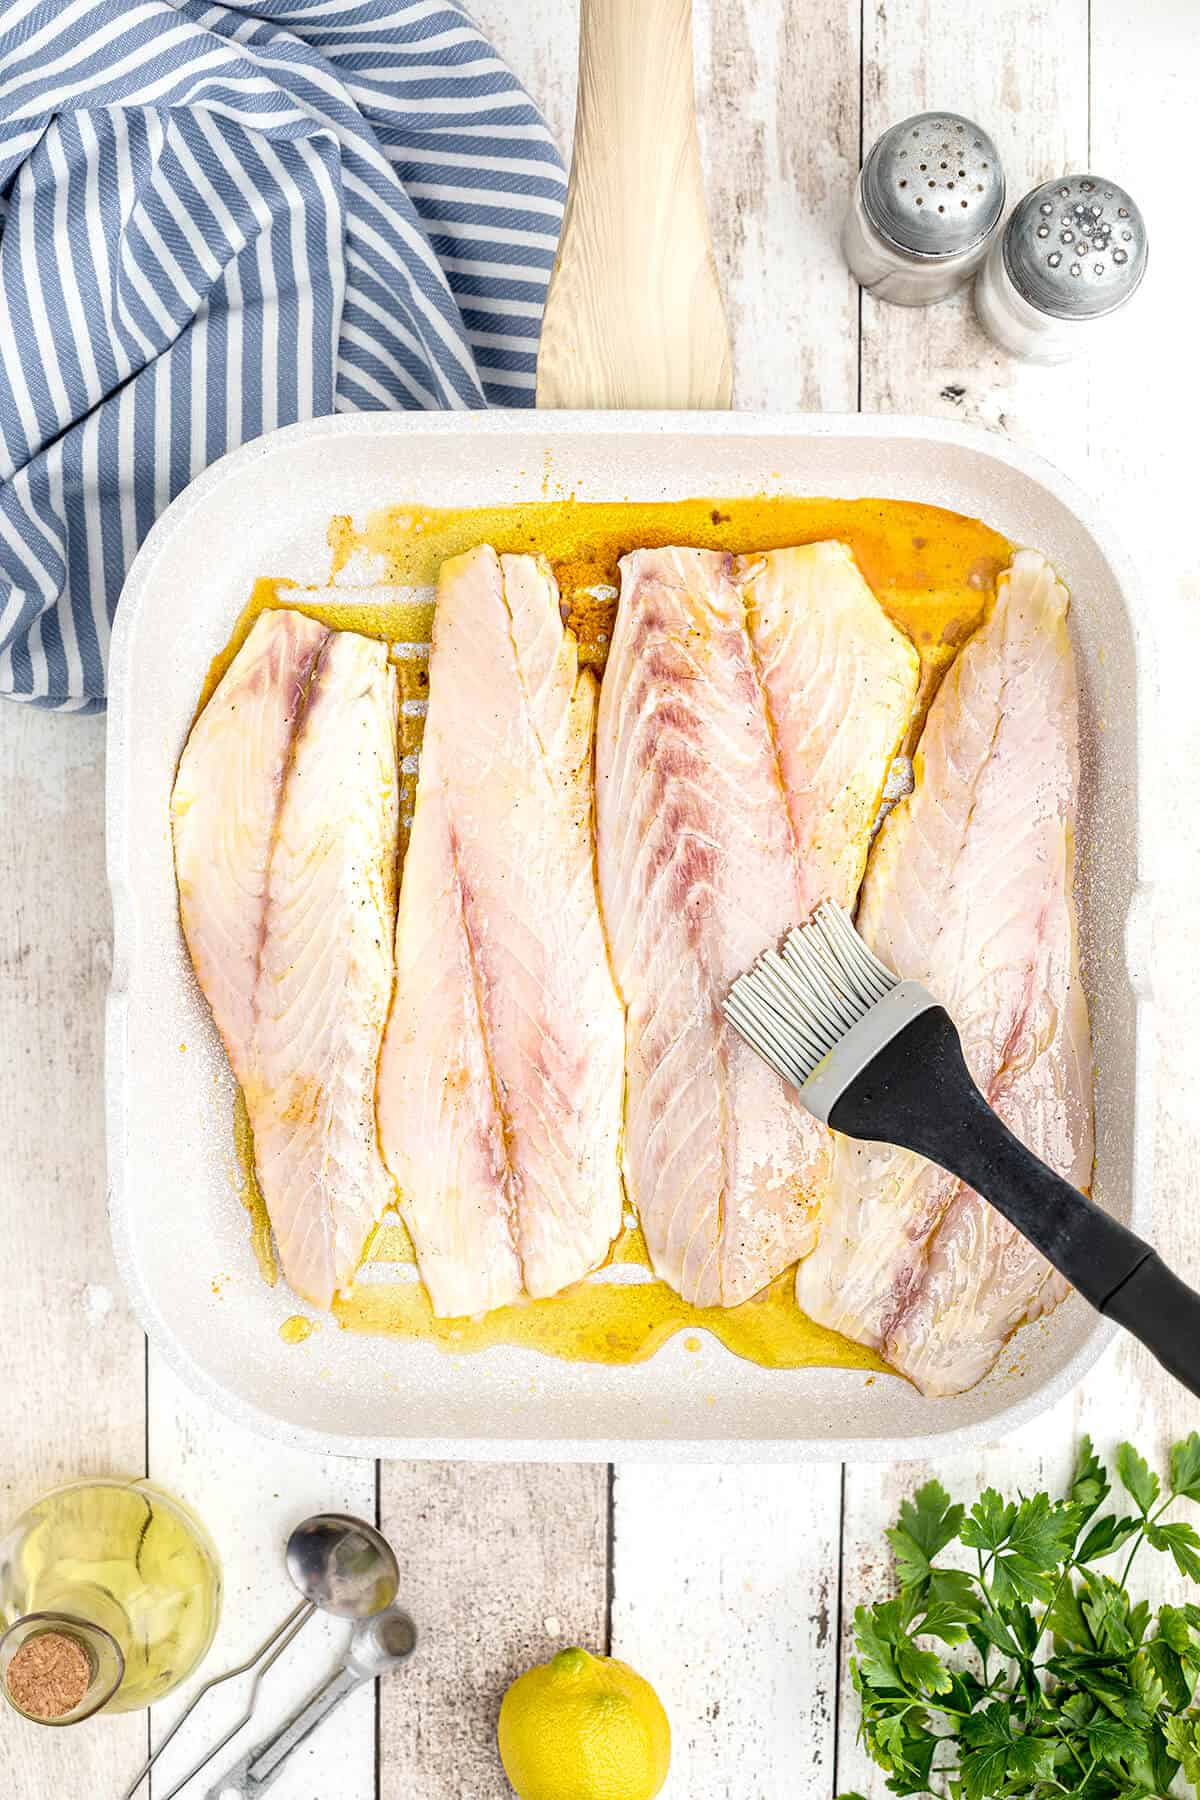 Fish fillets on a grill pan.